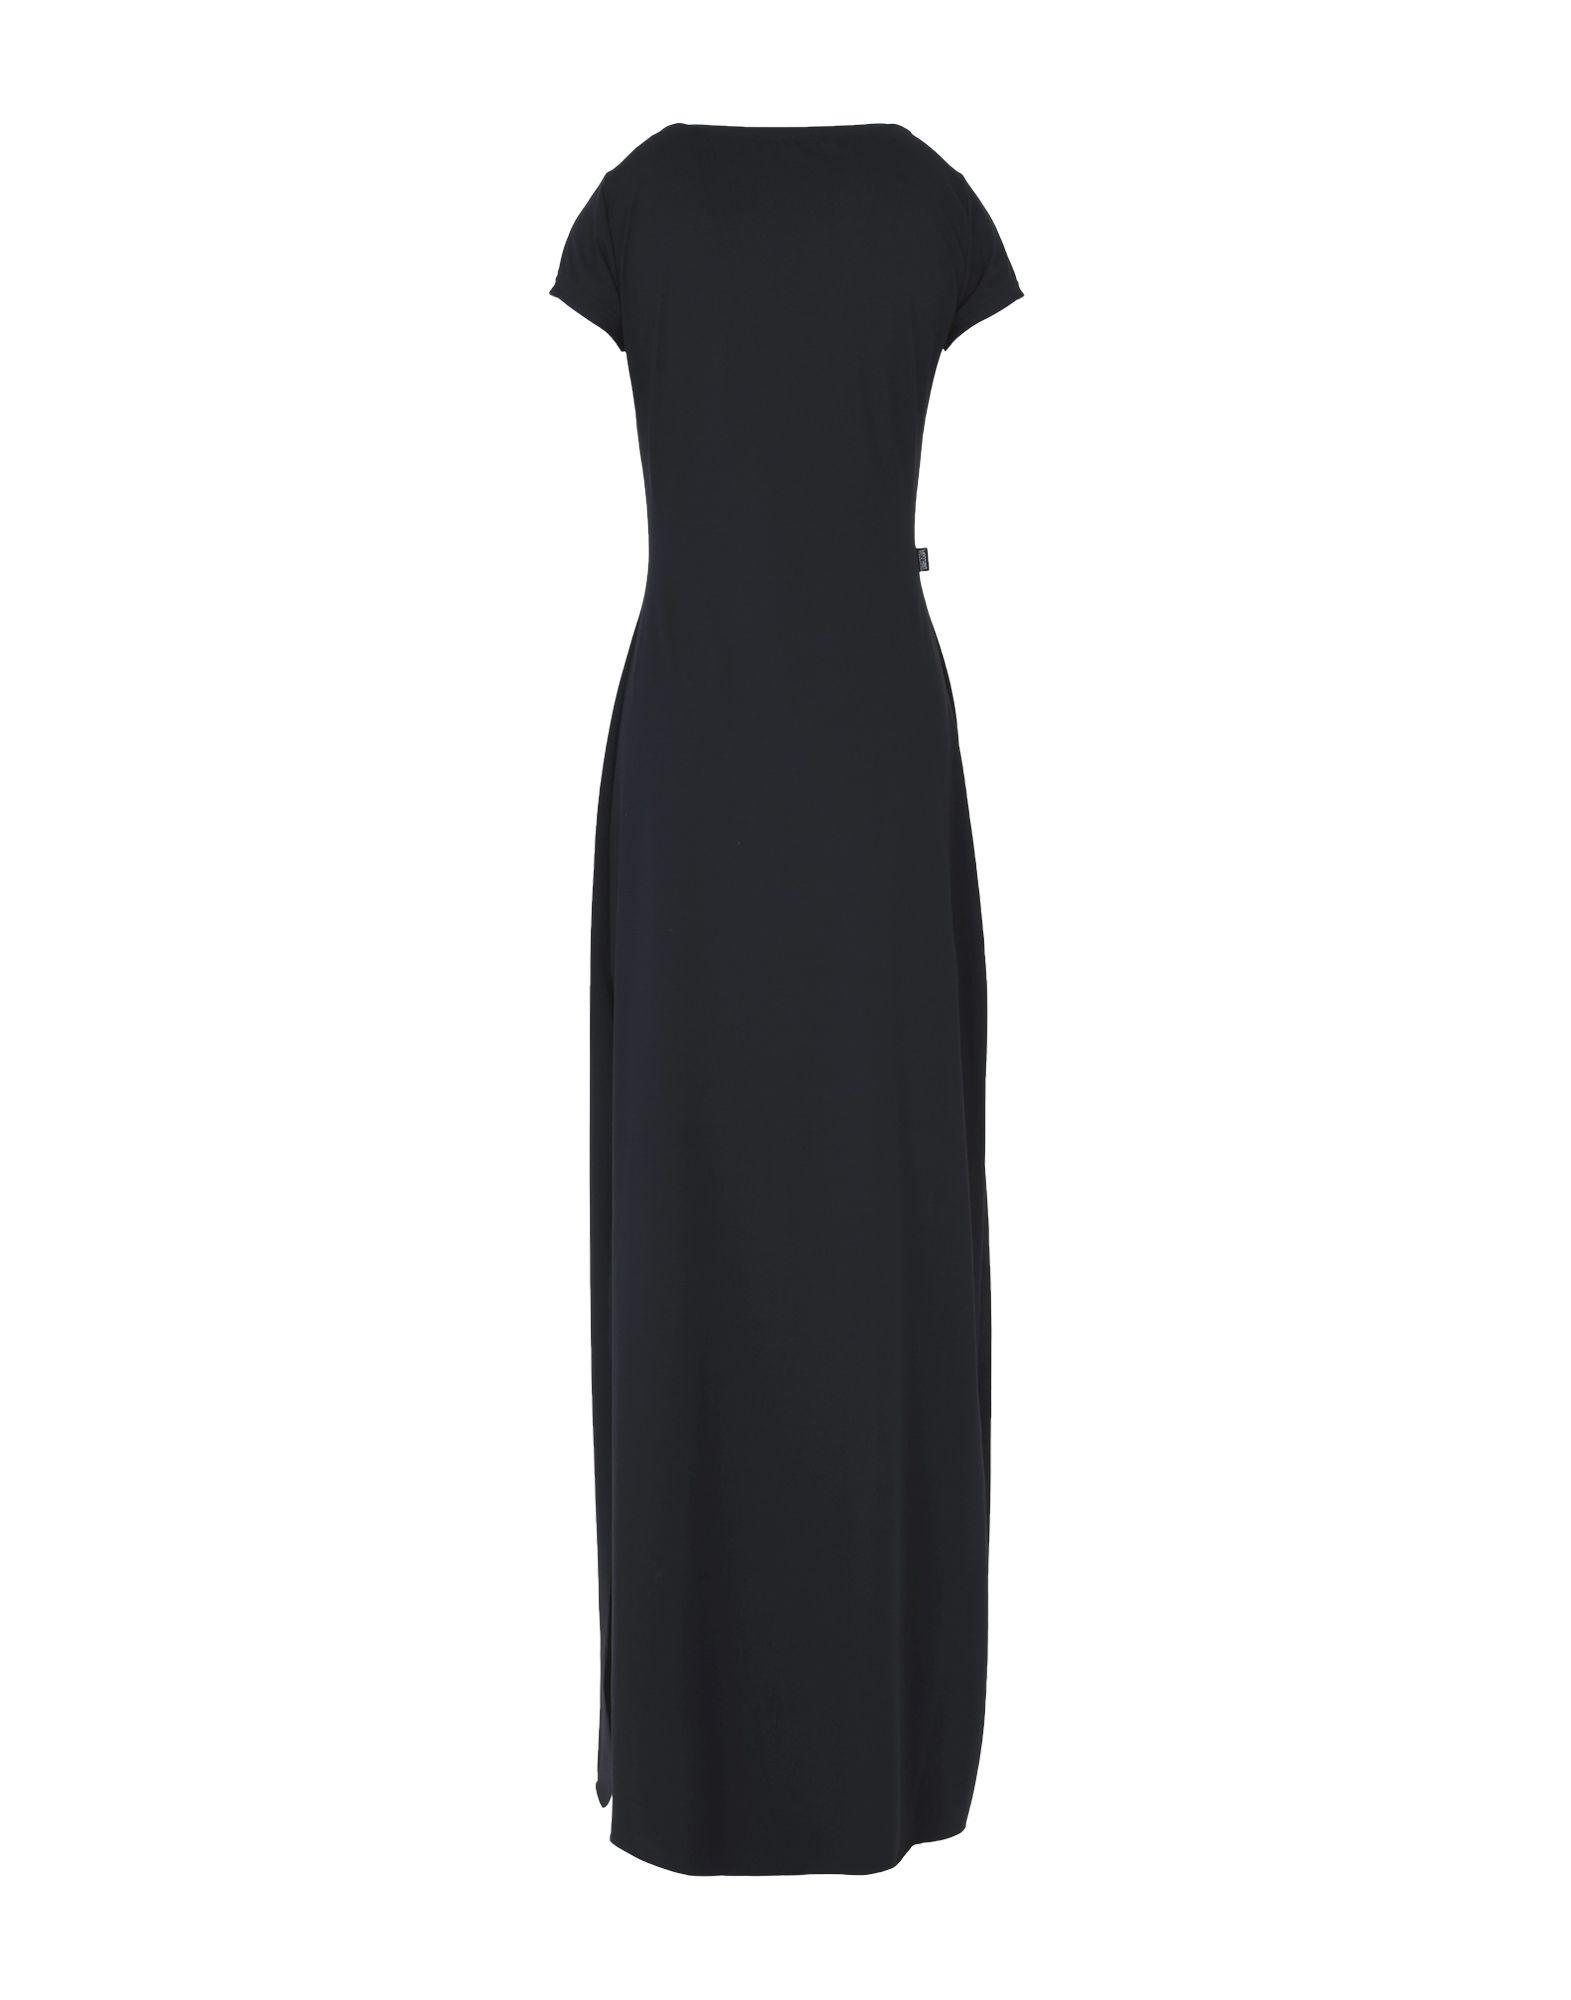 Moschino Jeans Synthetic Long Dress in Black